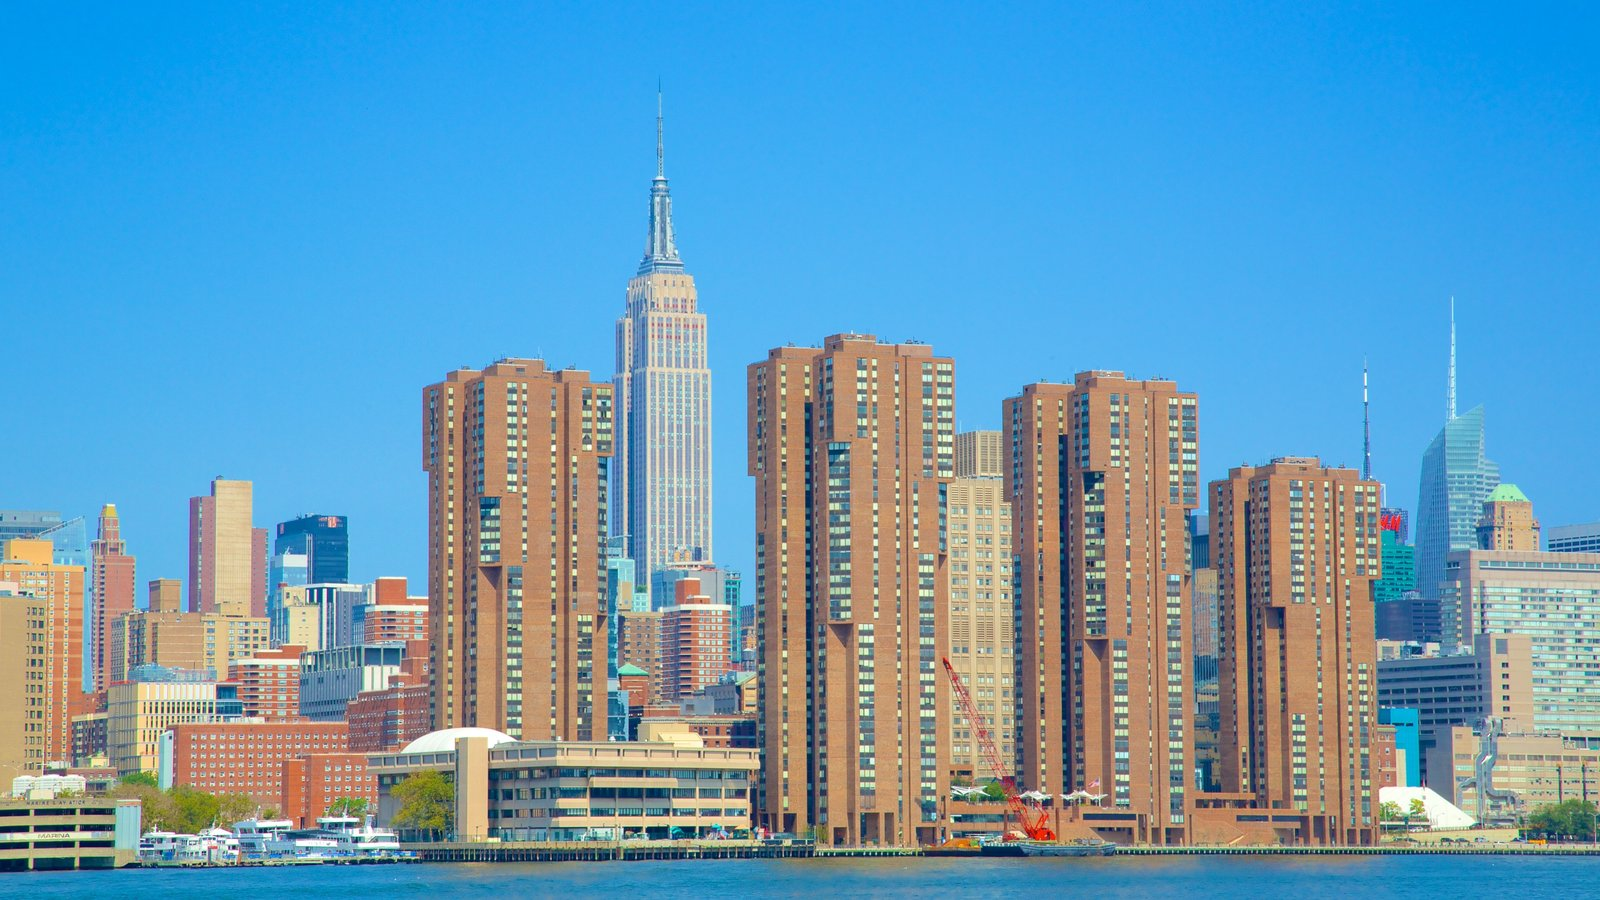 Empire State Building featuring skyline and a city